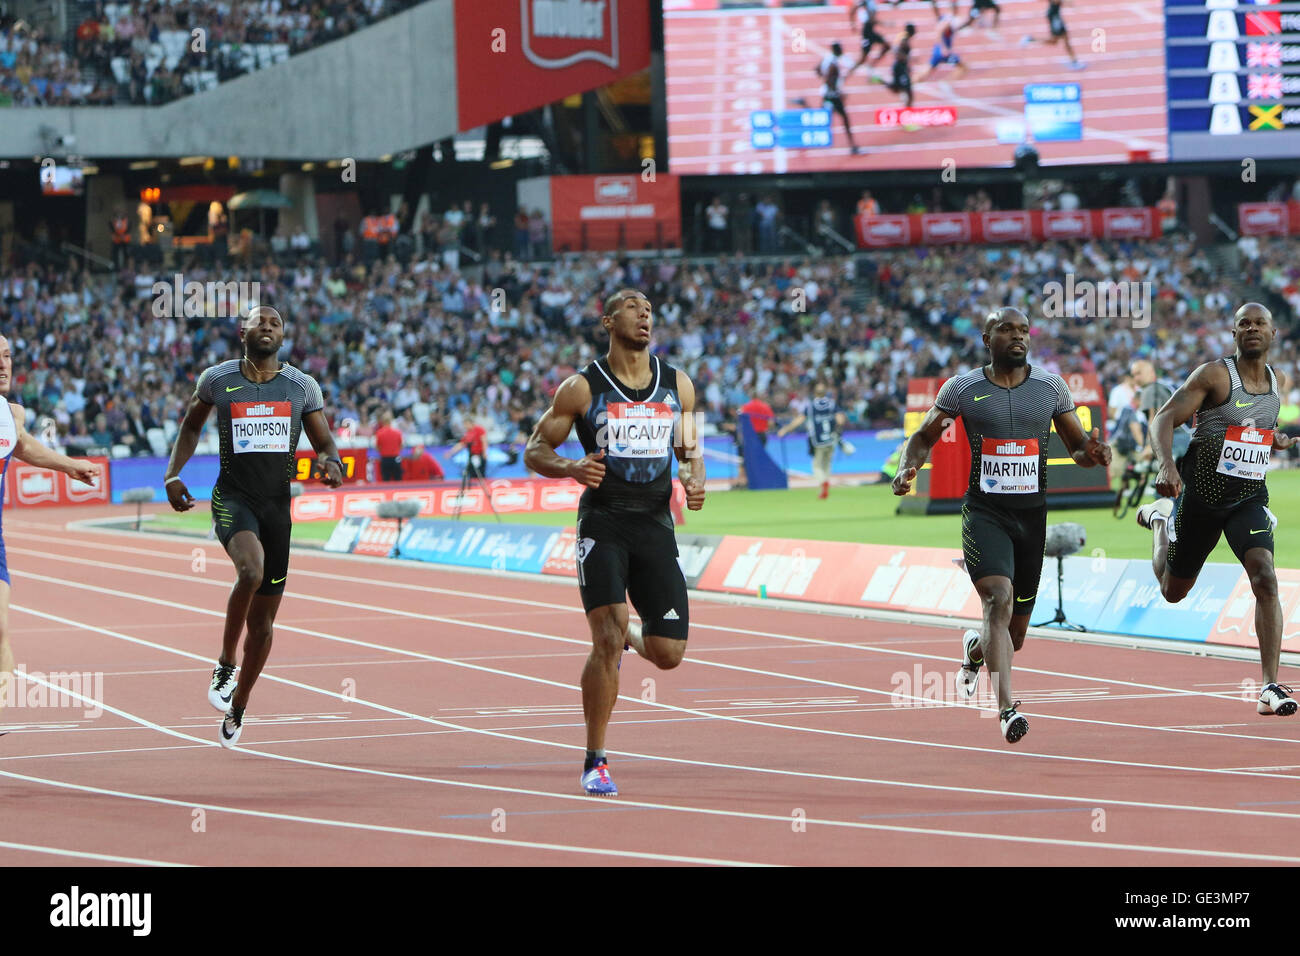 London, UK. 22nd July, 2016. IAAF Diamond League Anniversary Games. Vicount takes first place in the 100m mens heat. - Stock Image